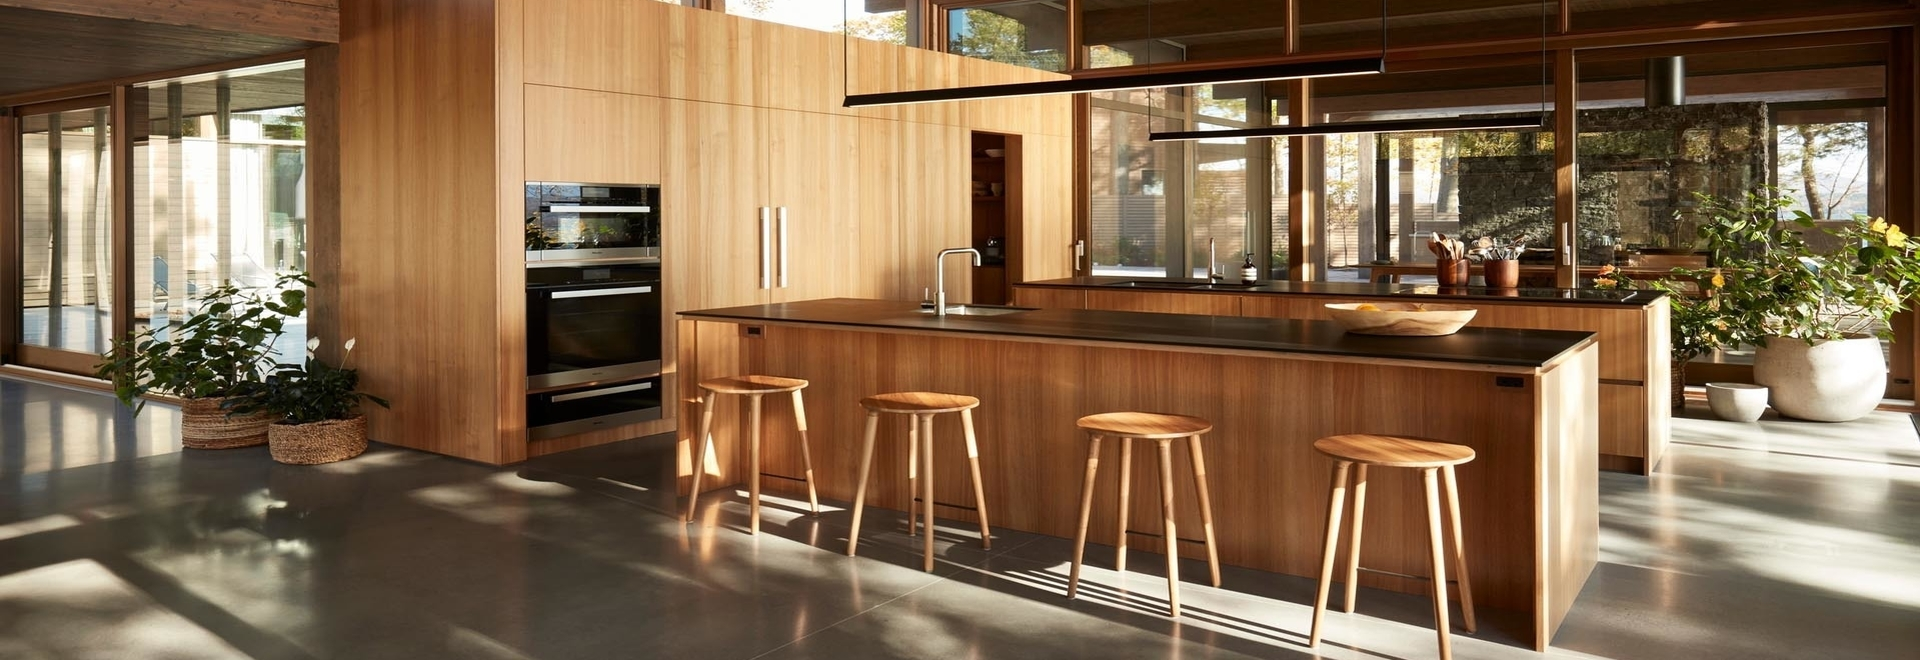 A Kitchen With Two Islands Provides Double The Counter Space For Serious Cooking